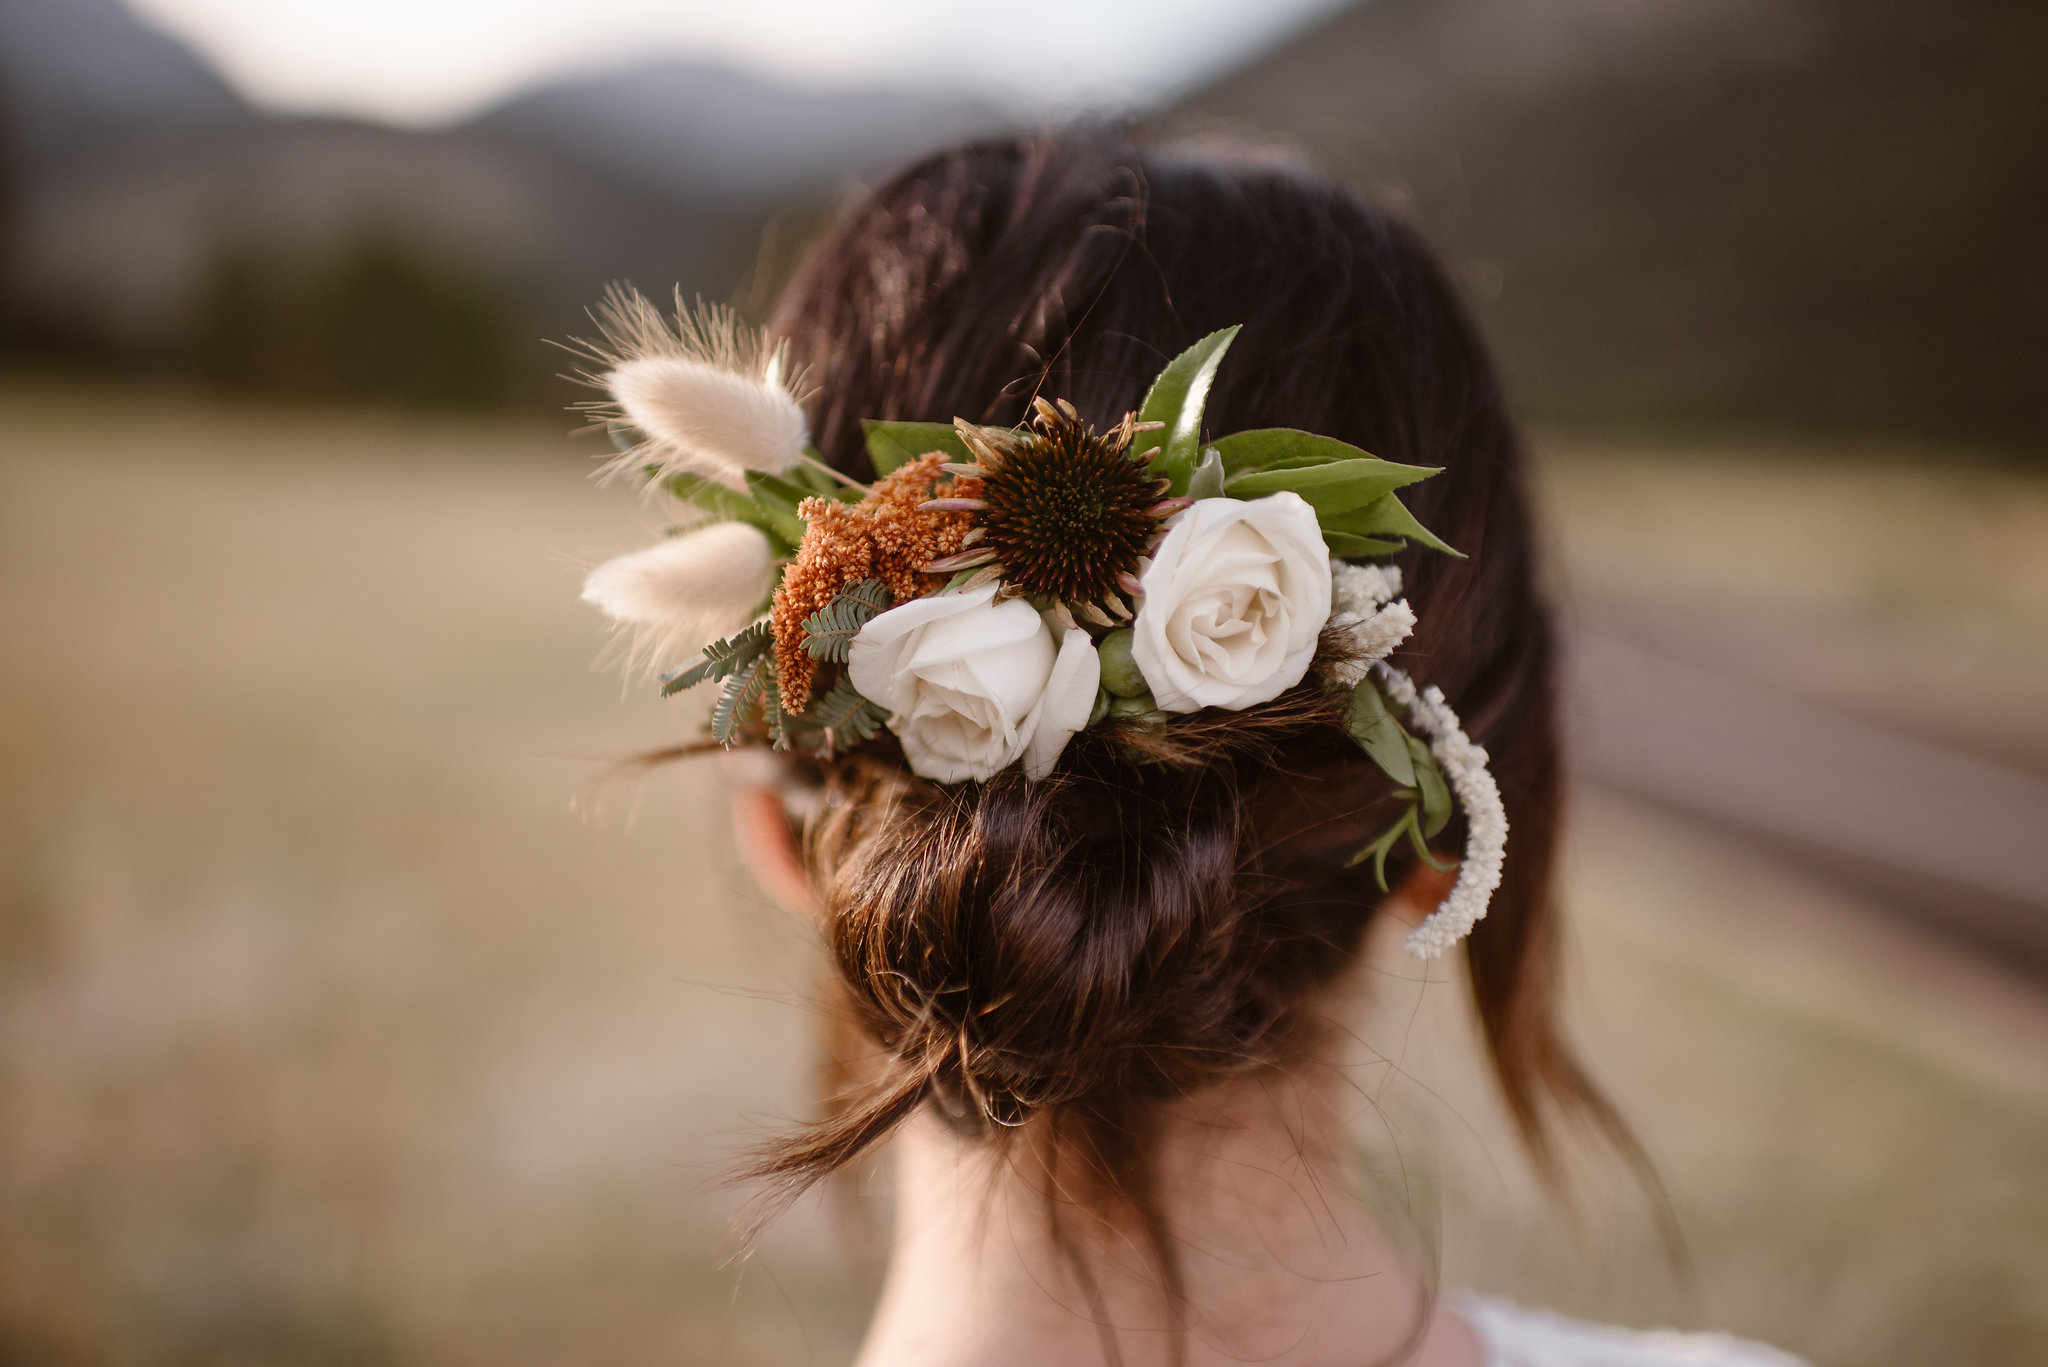 Flowers by Lace and Lilies, wedding flowers, flower comb, hair flowers, wedding flowers, bridal bouquet